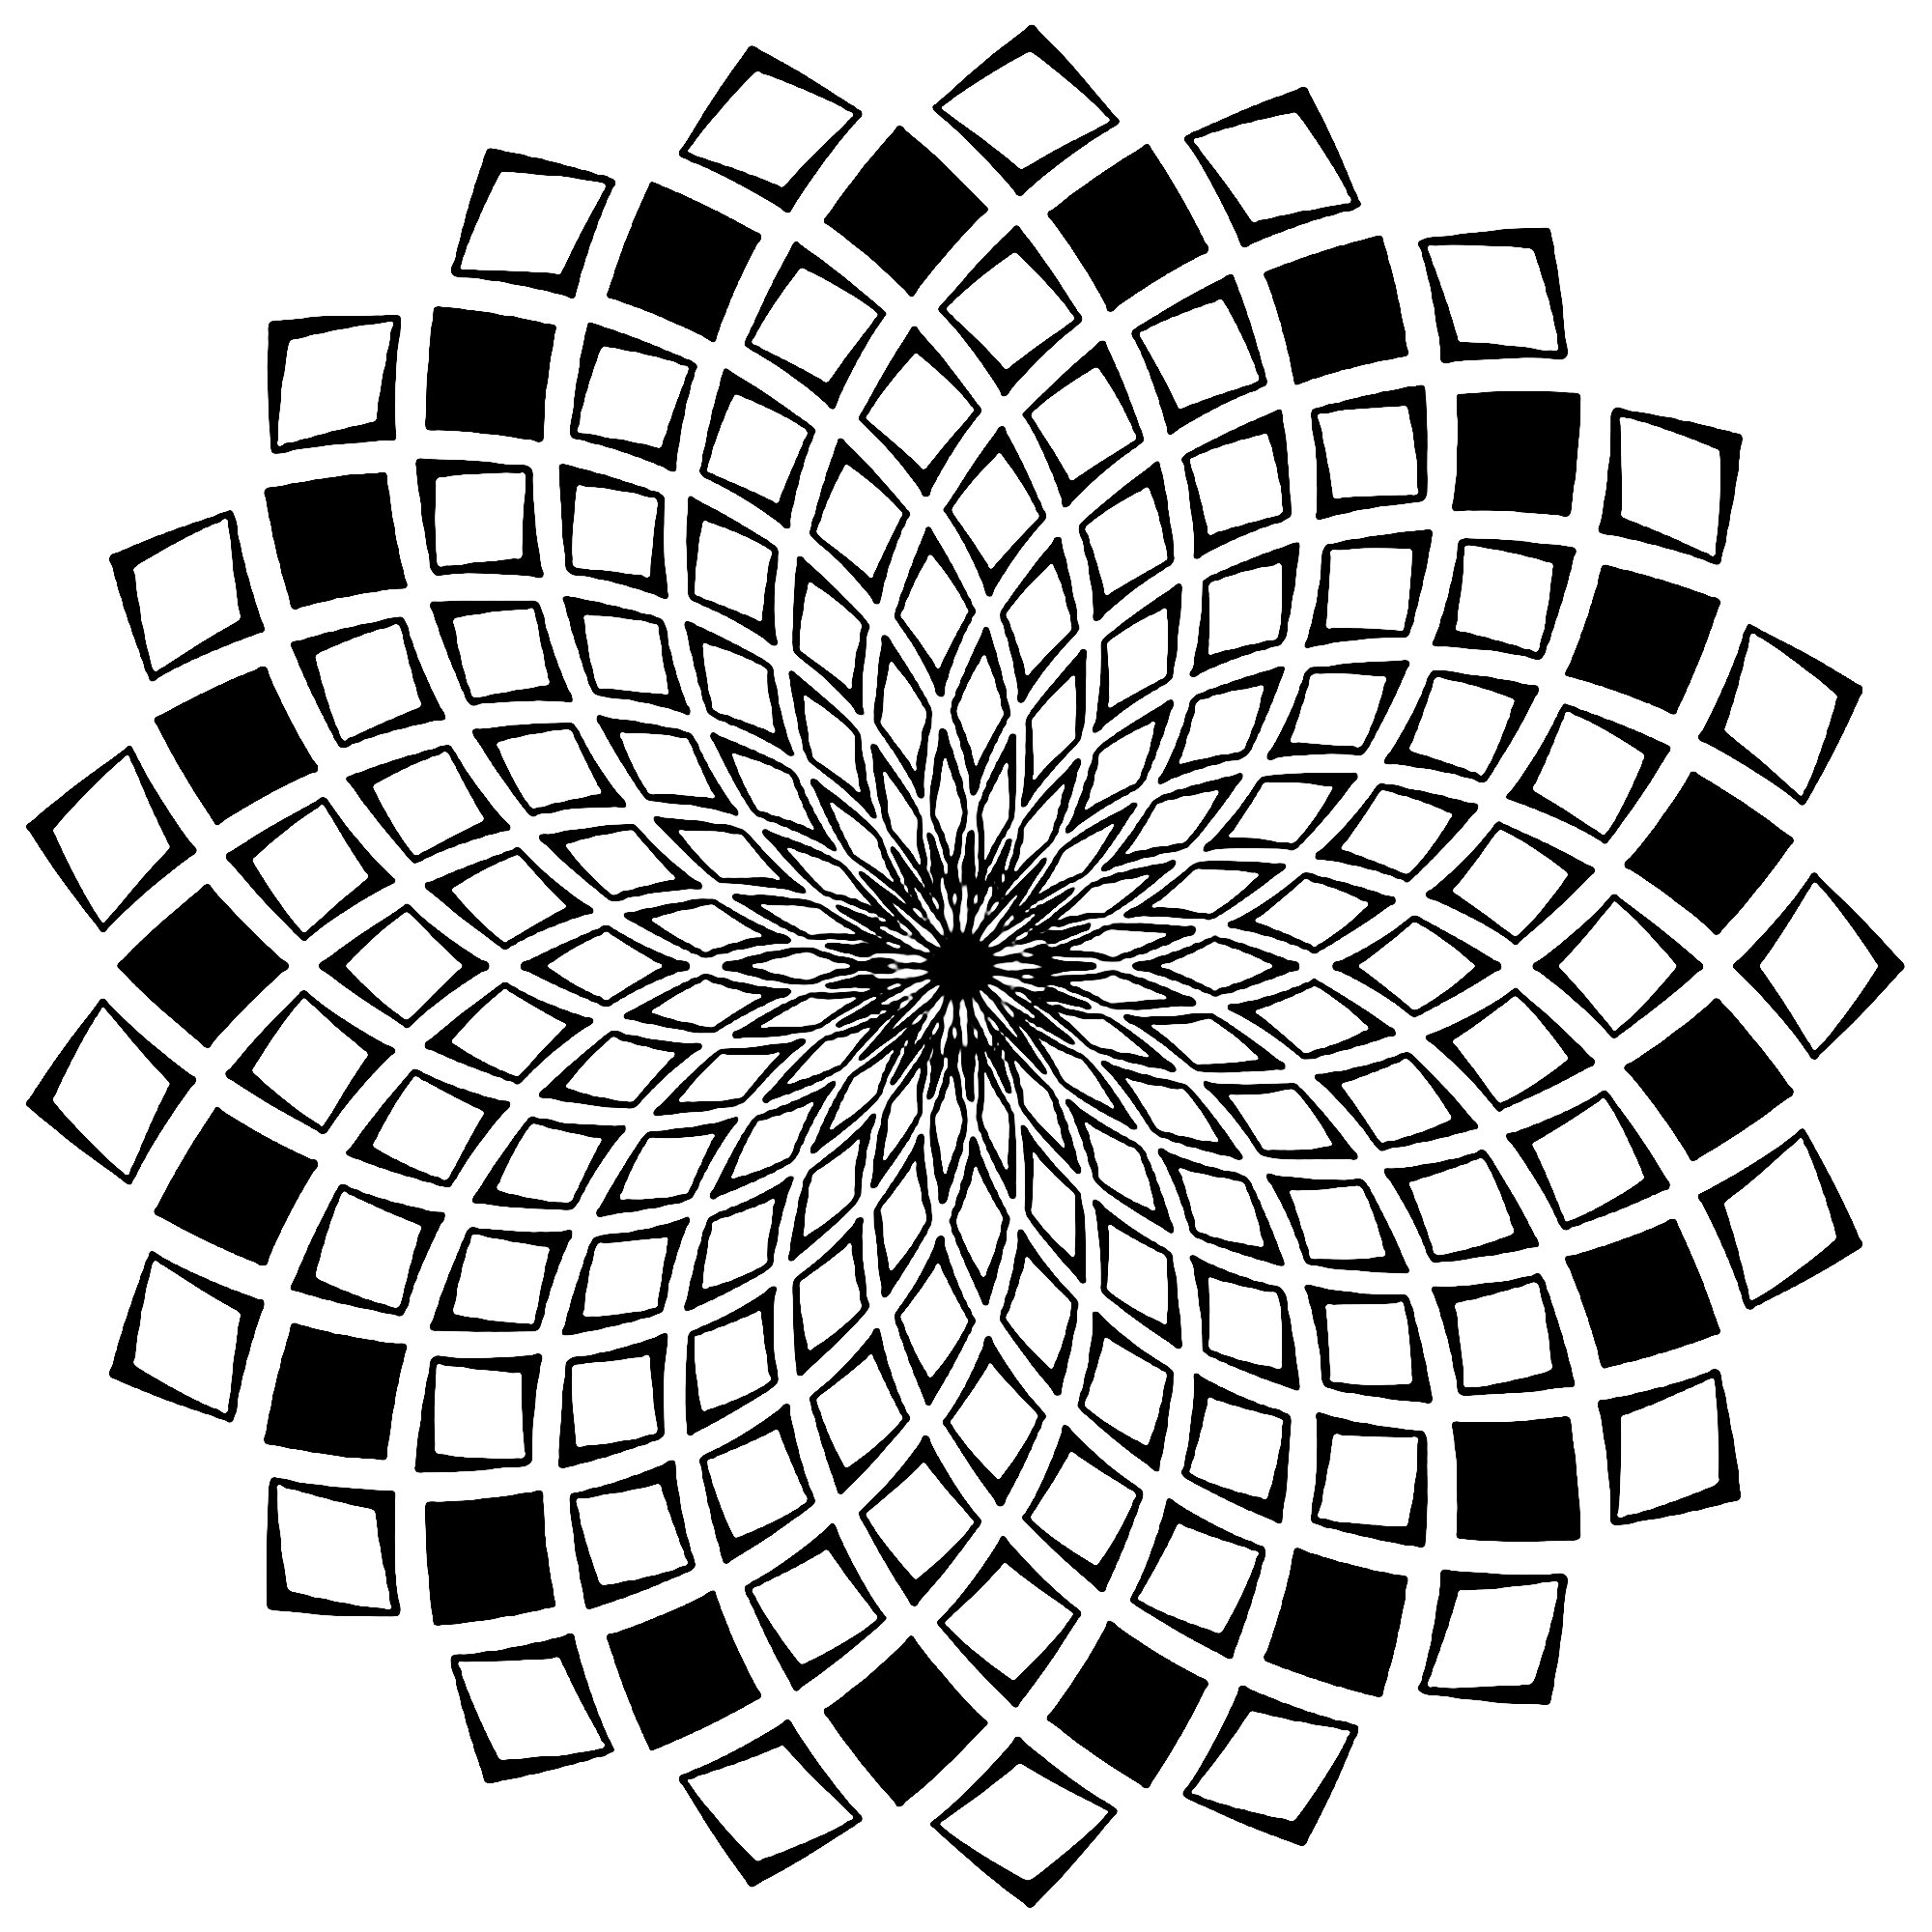 Mandala composed of little squares